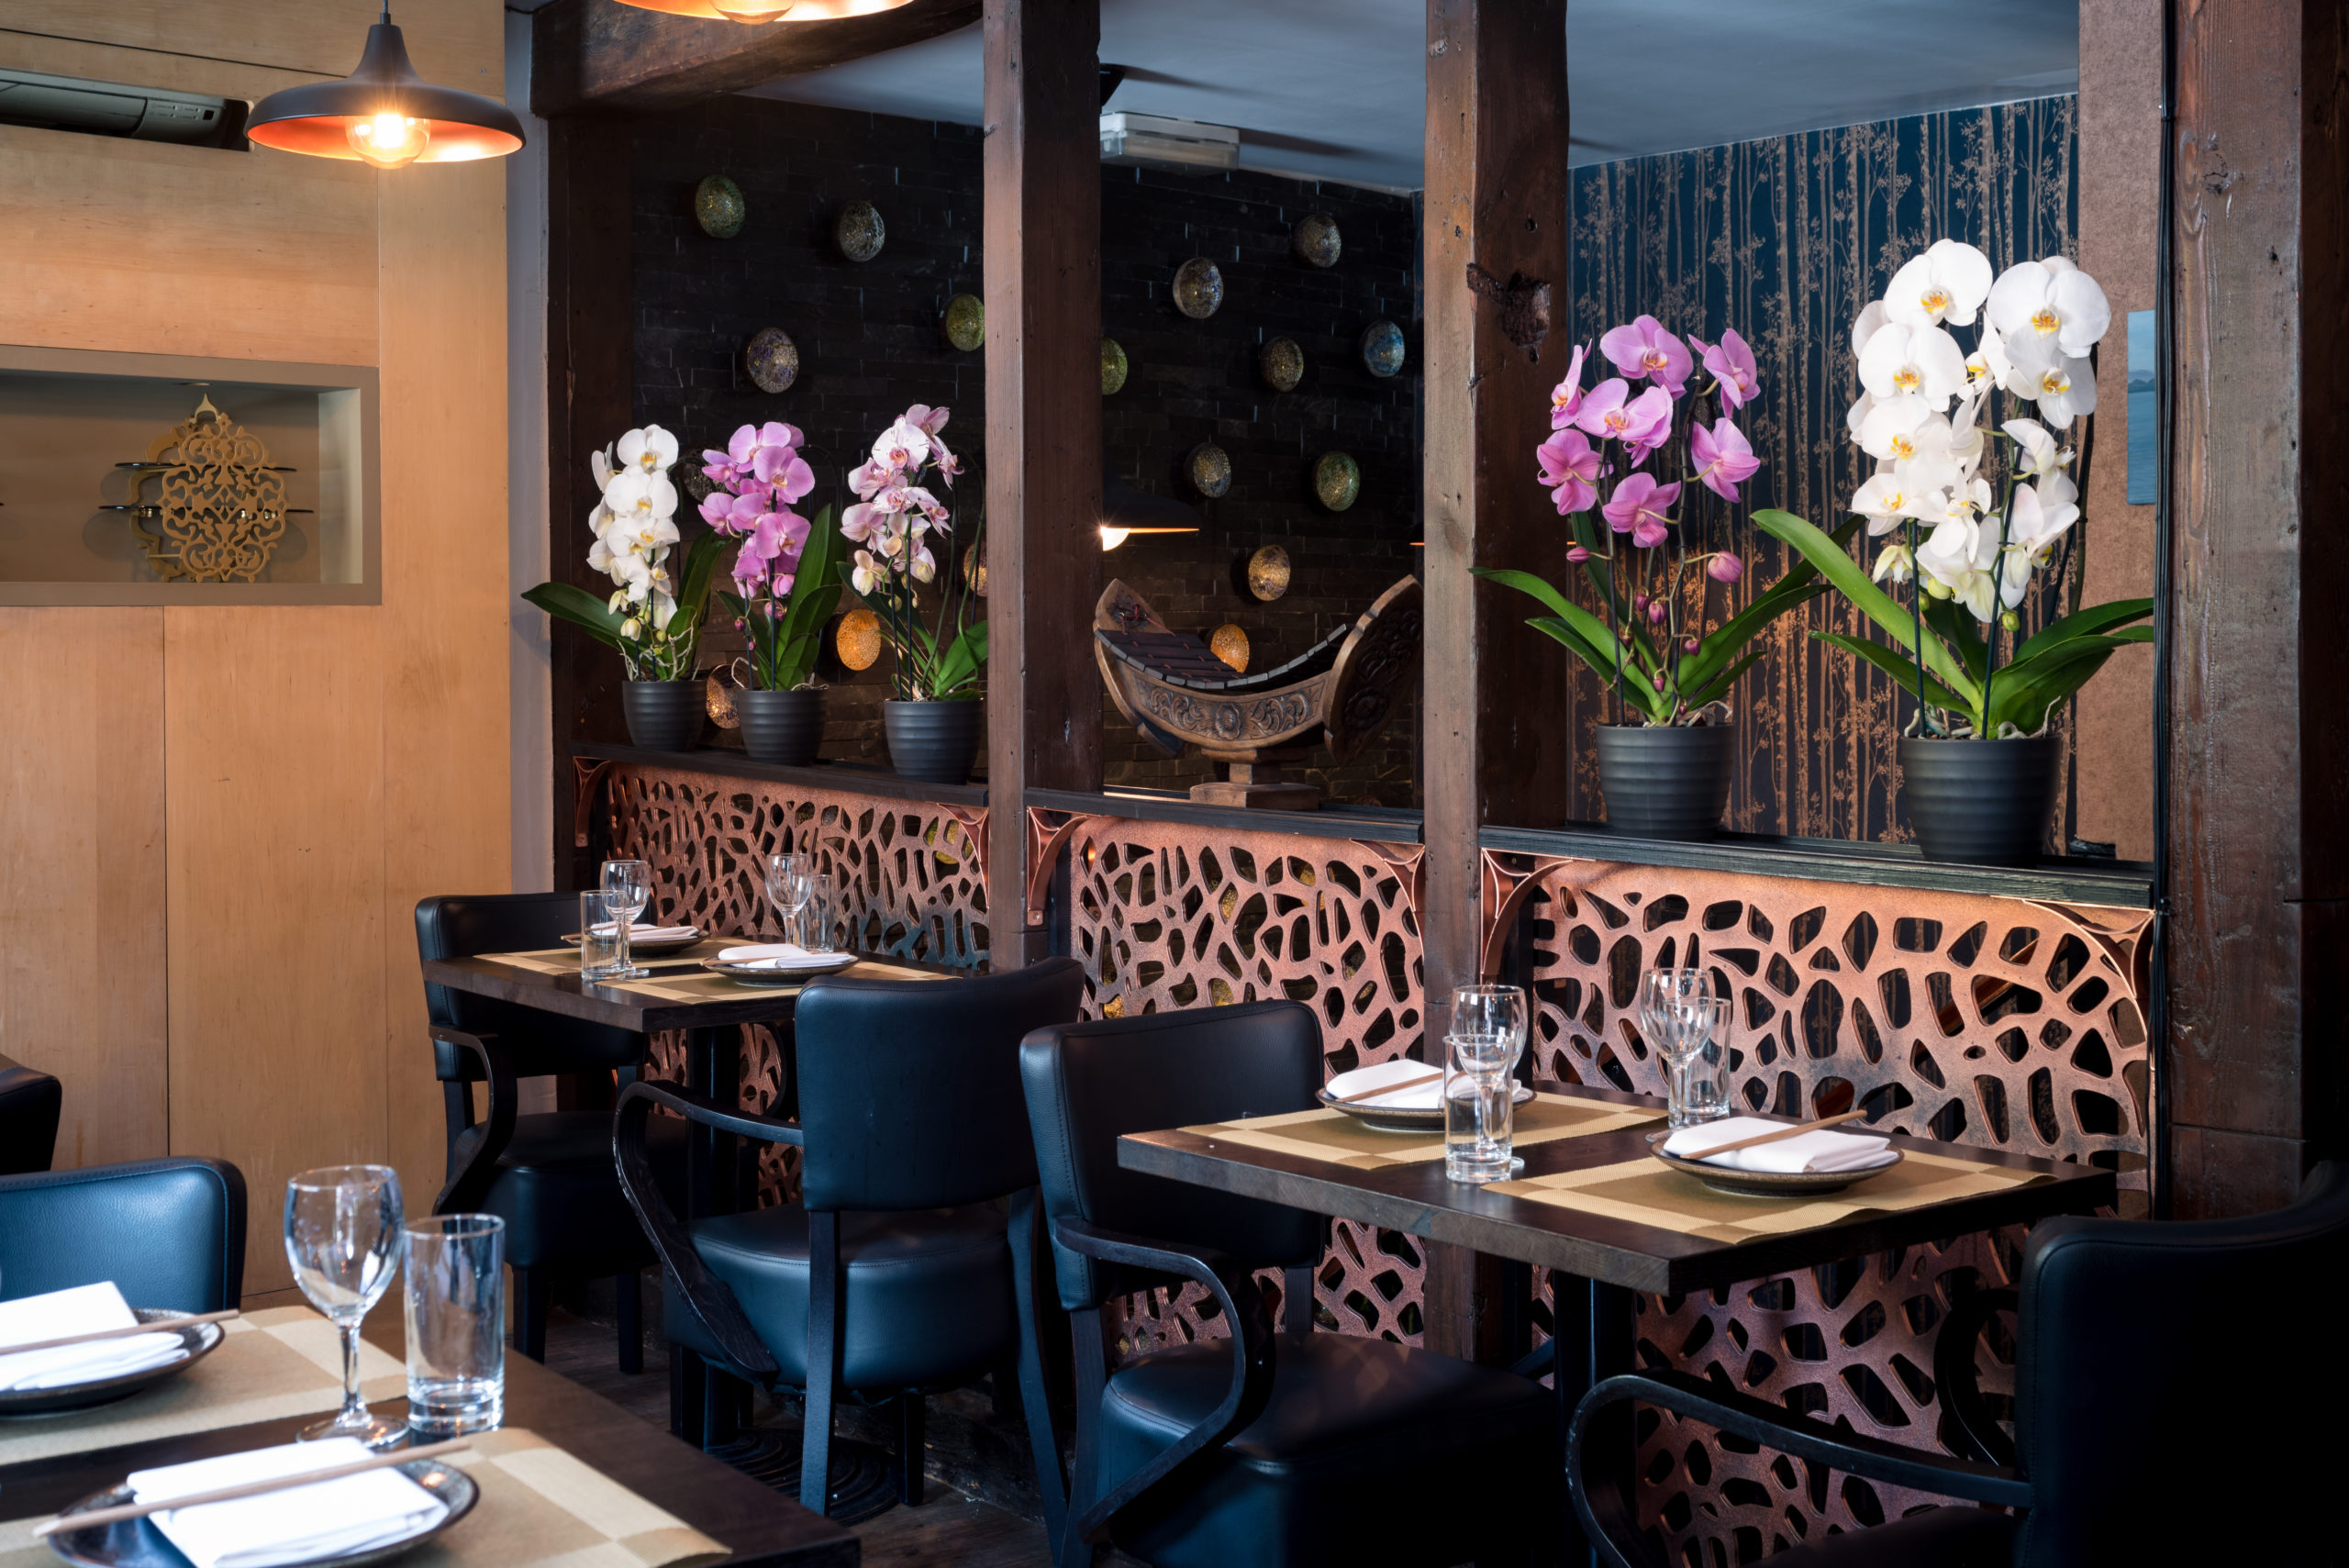 Award Winning Authentic SE Asian Cuisine at Sticky Mango: Restaurant Interior